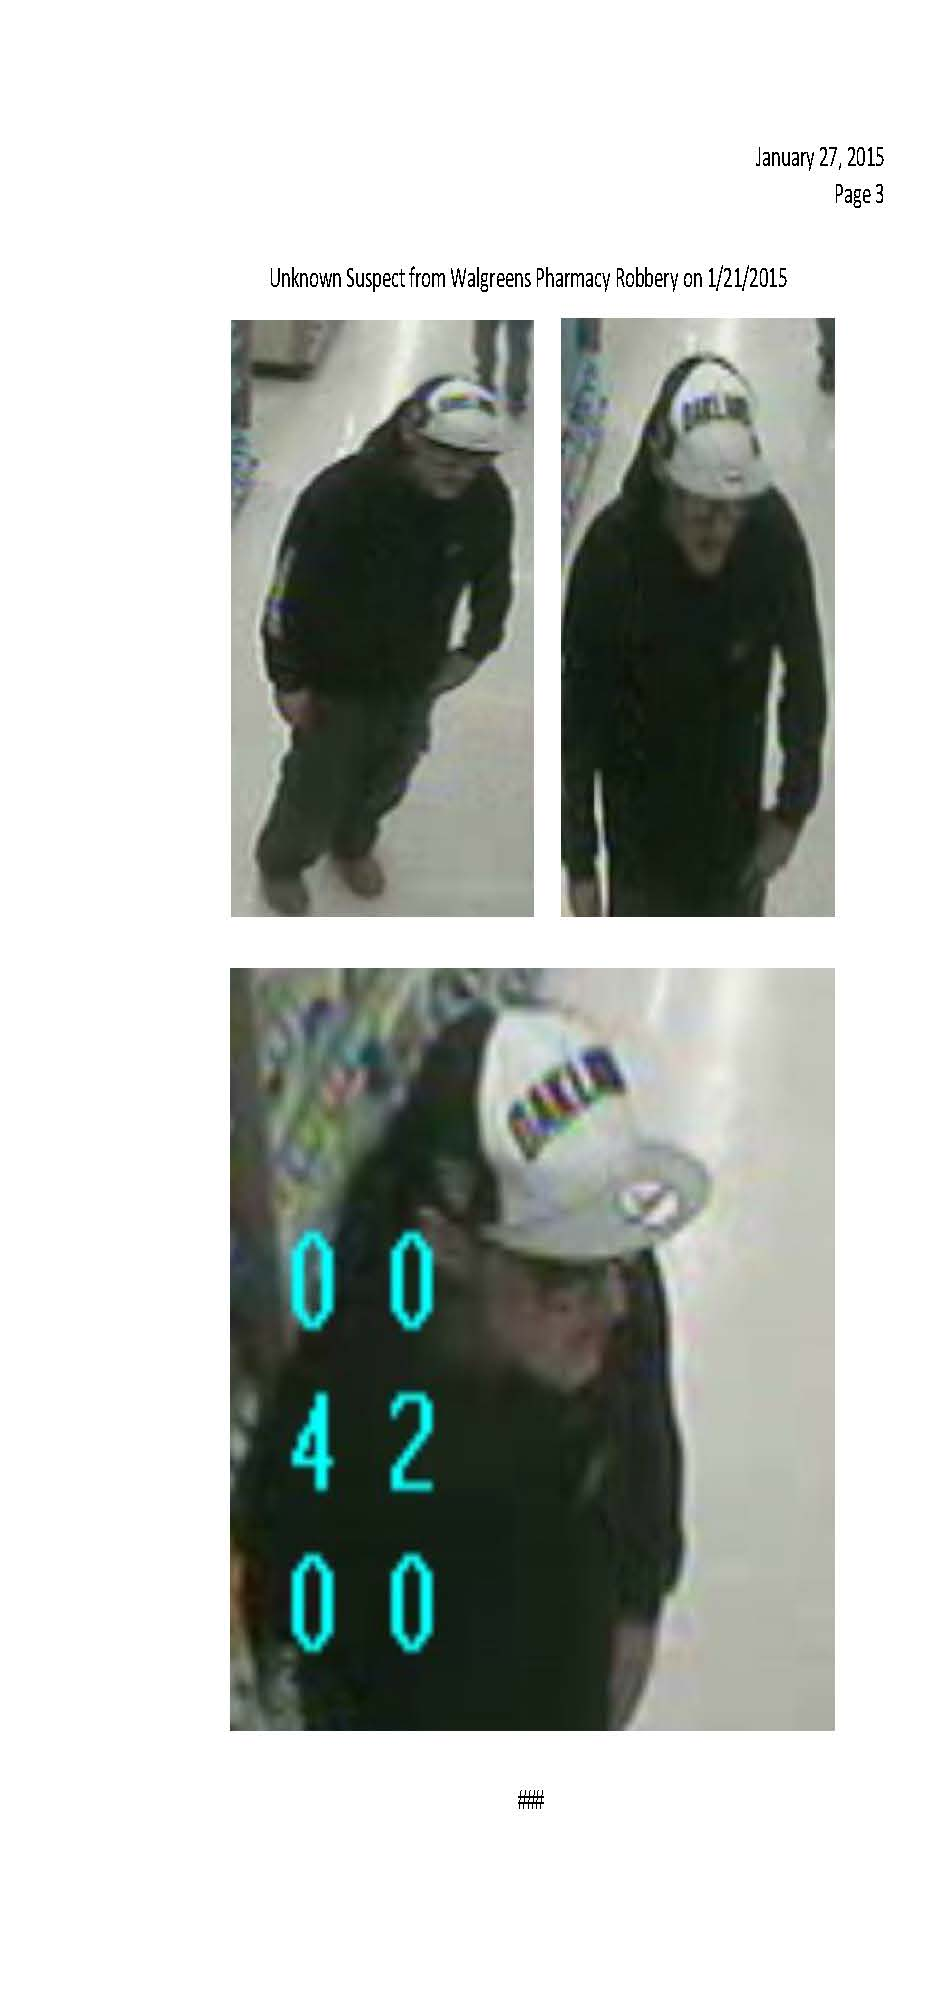 012715 Walgreens Pharmacy Robbery_Page_3